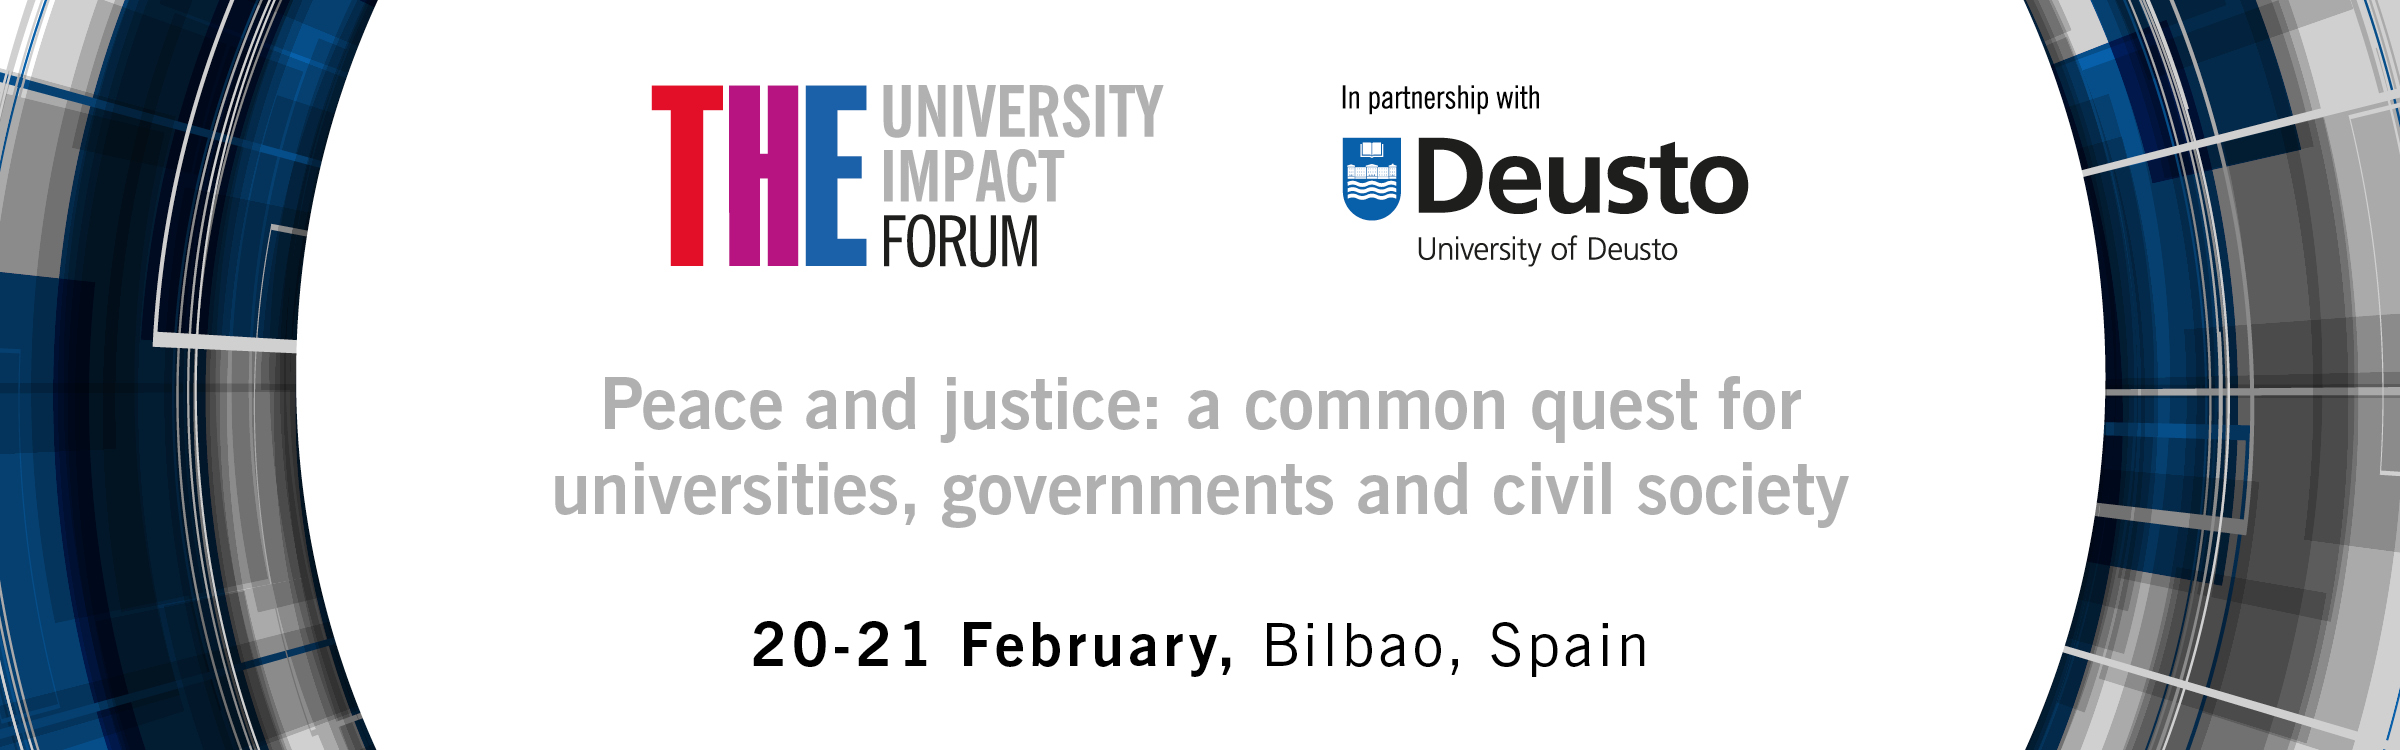 THE University Impact Forum: Peace, Justice & Strong Institutions